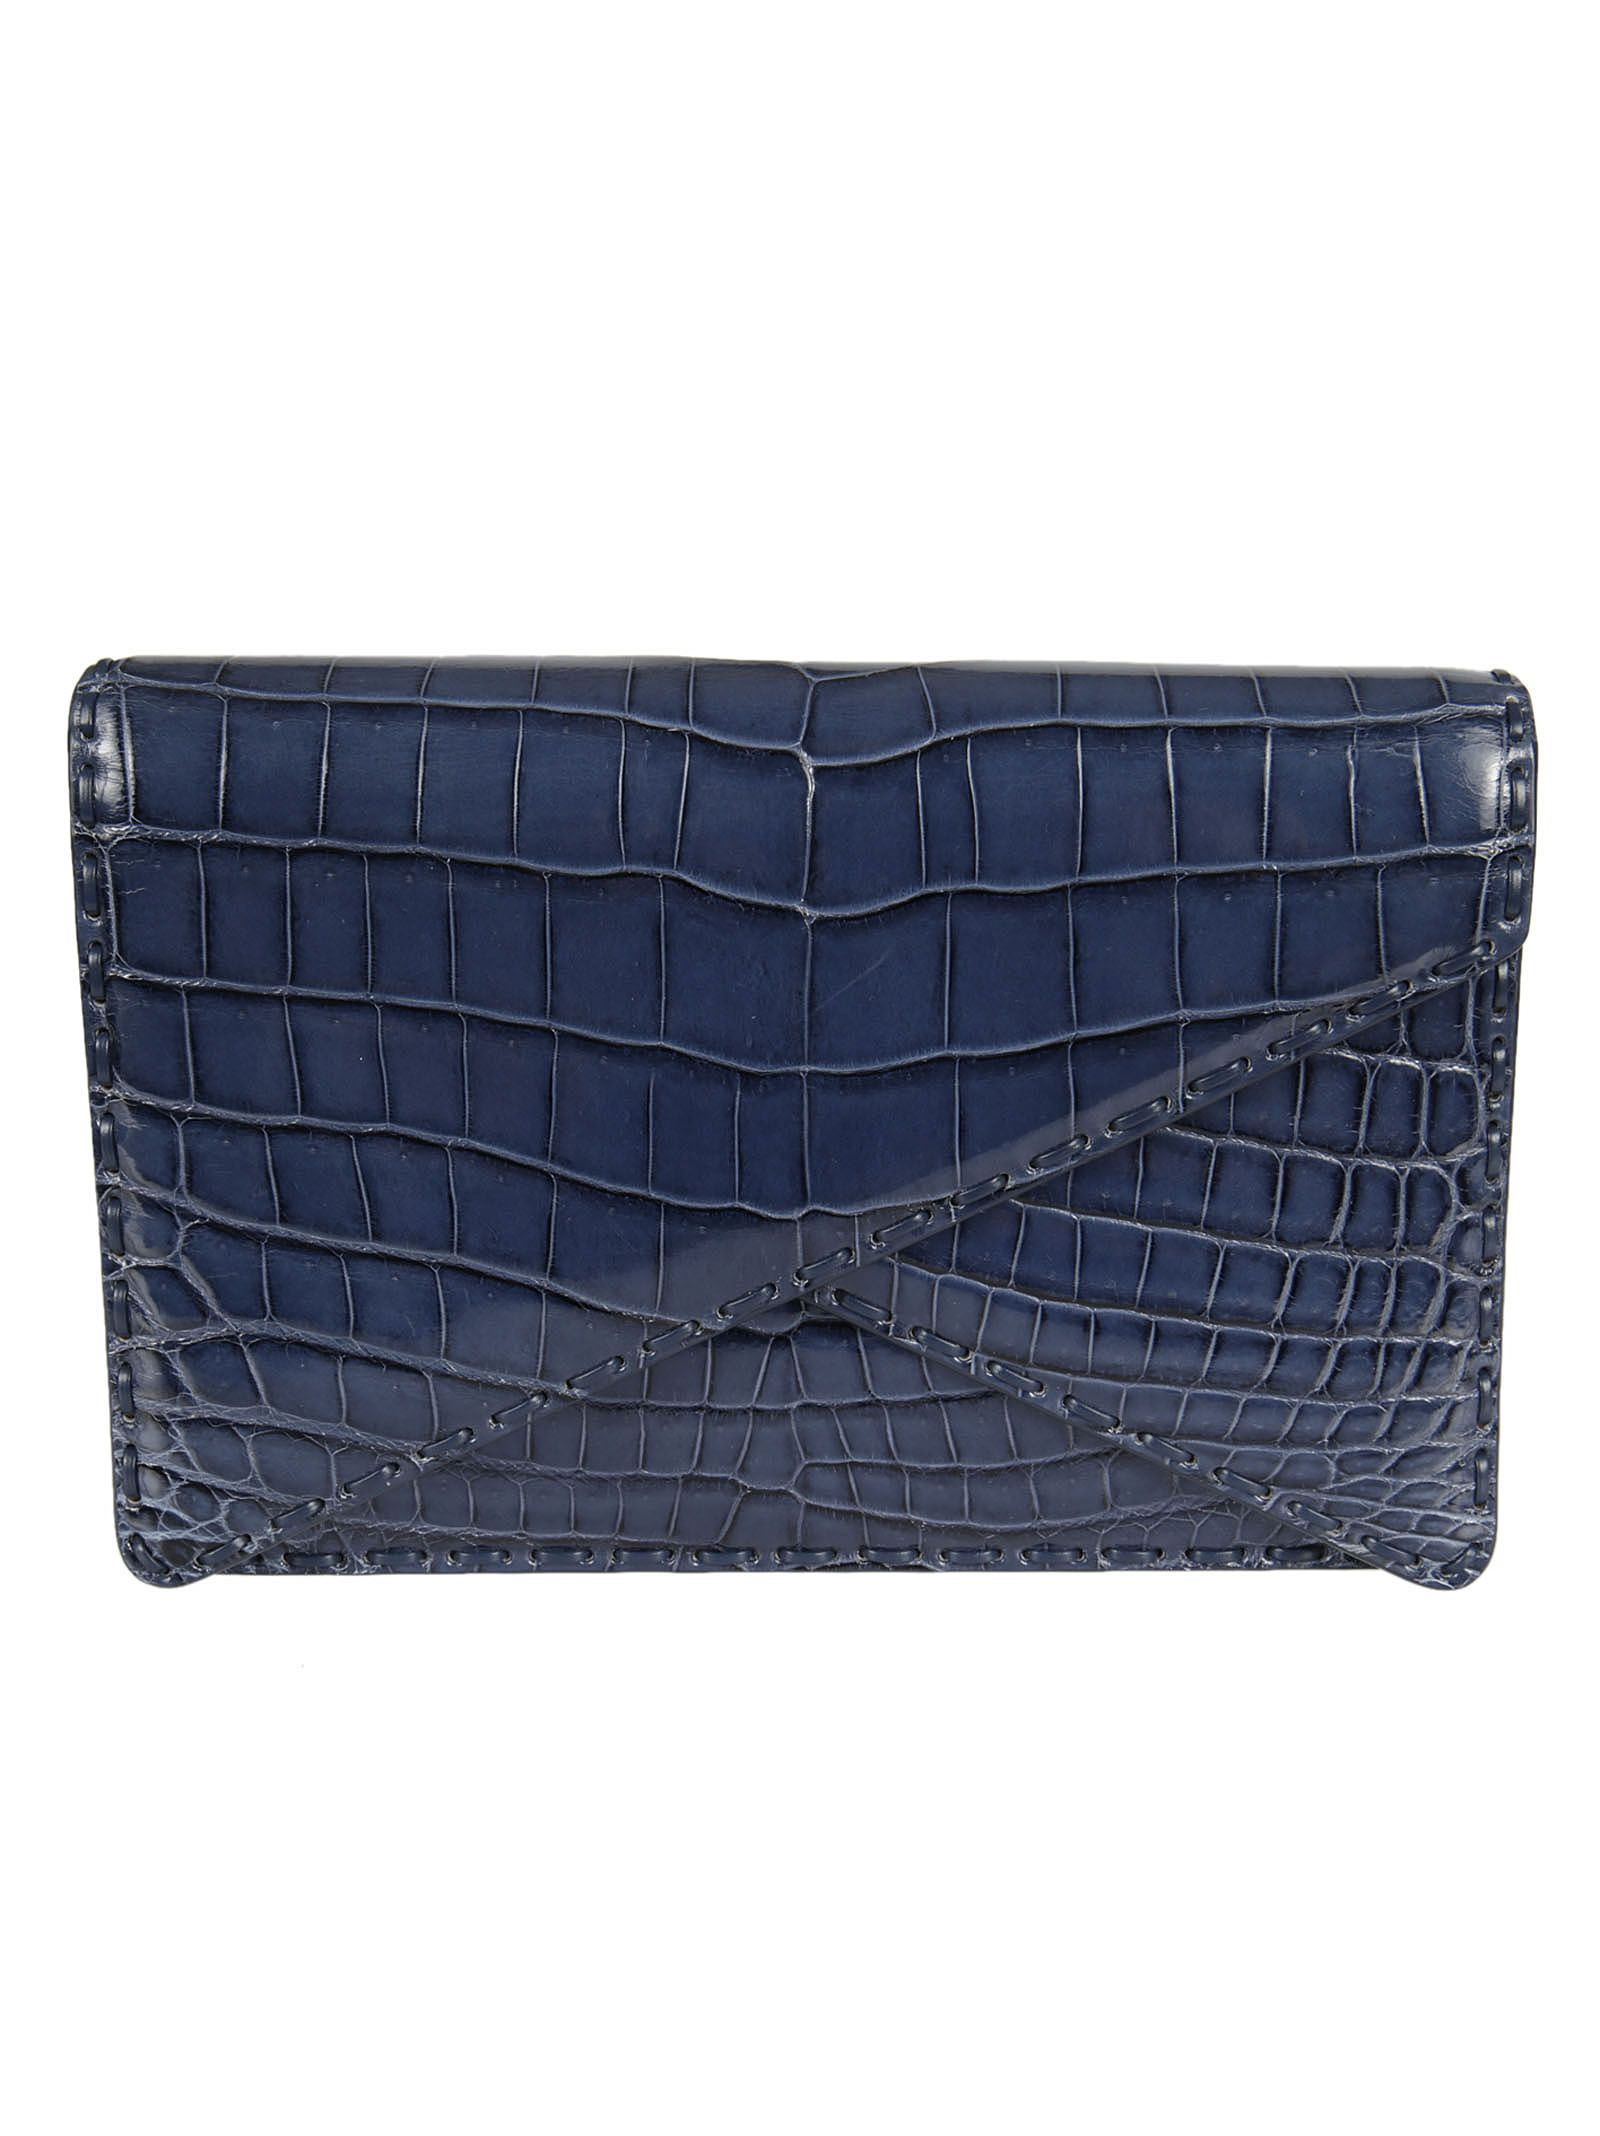 Bottega Veneta Leather Clutch